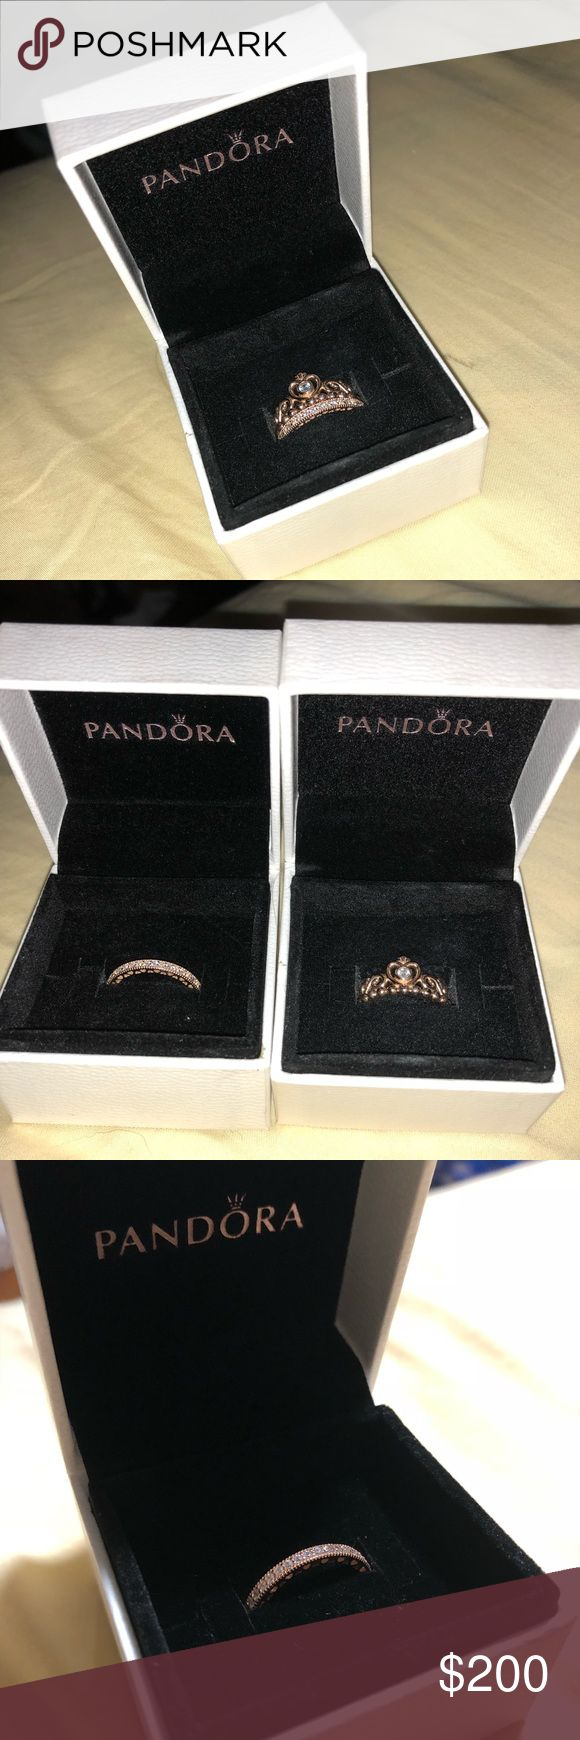 Rose Gold Pandora Rings Rose Gold Princess ring sz 4.5 Rose Gold Hearts of Pandora ring sz 4.5 Want to get around what I paid for so its more expensive than i got it for since not all the money goes to the seller. If you would like to get them for around $180 maybe we can work something else out like a paypal ordeal if you inquire :) Pandora Jewelry Rings